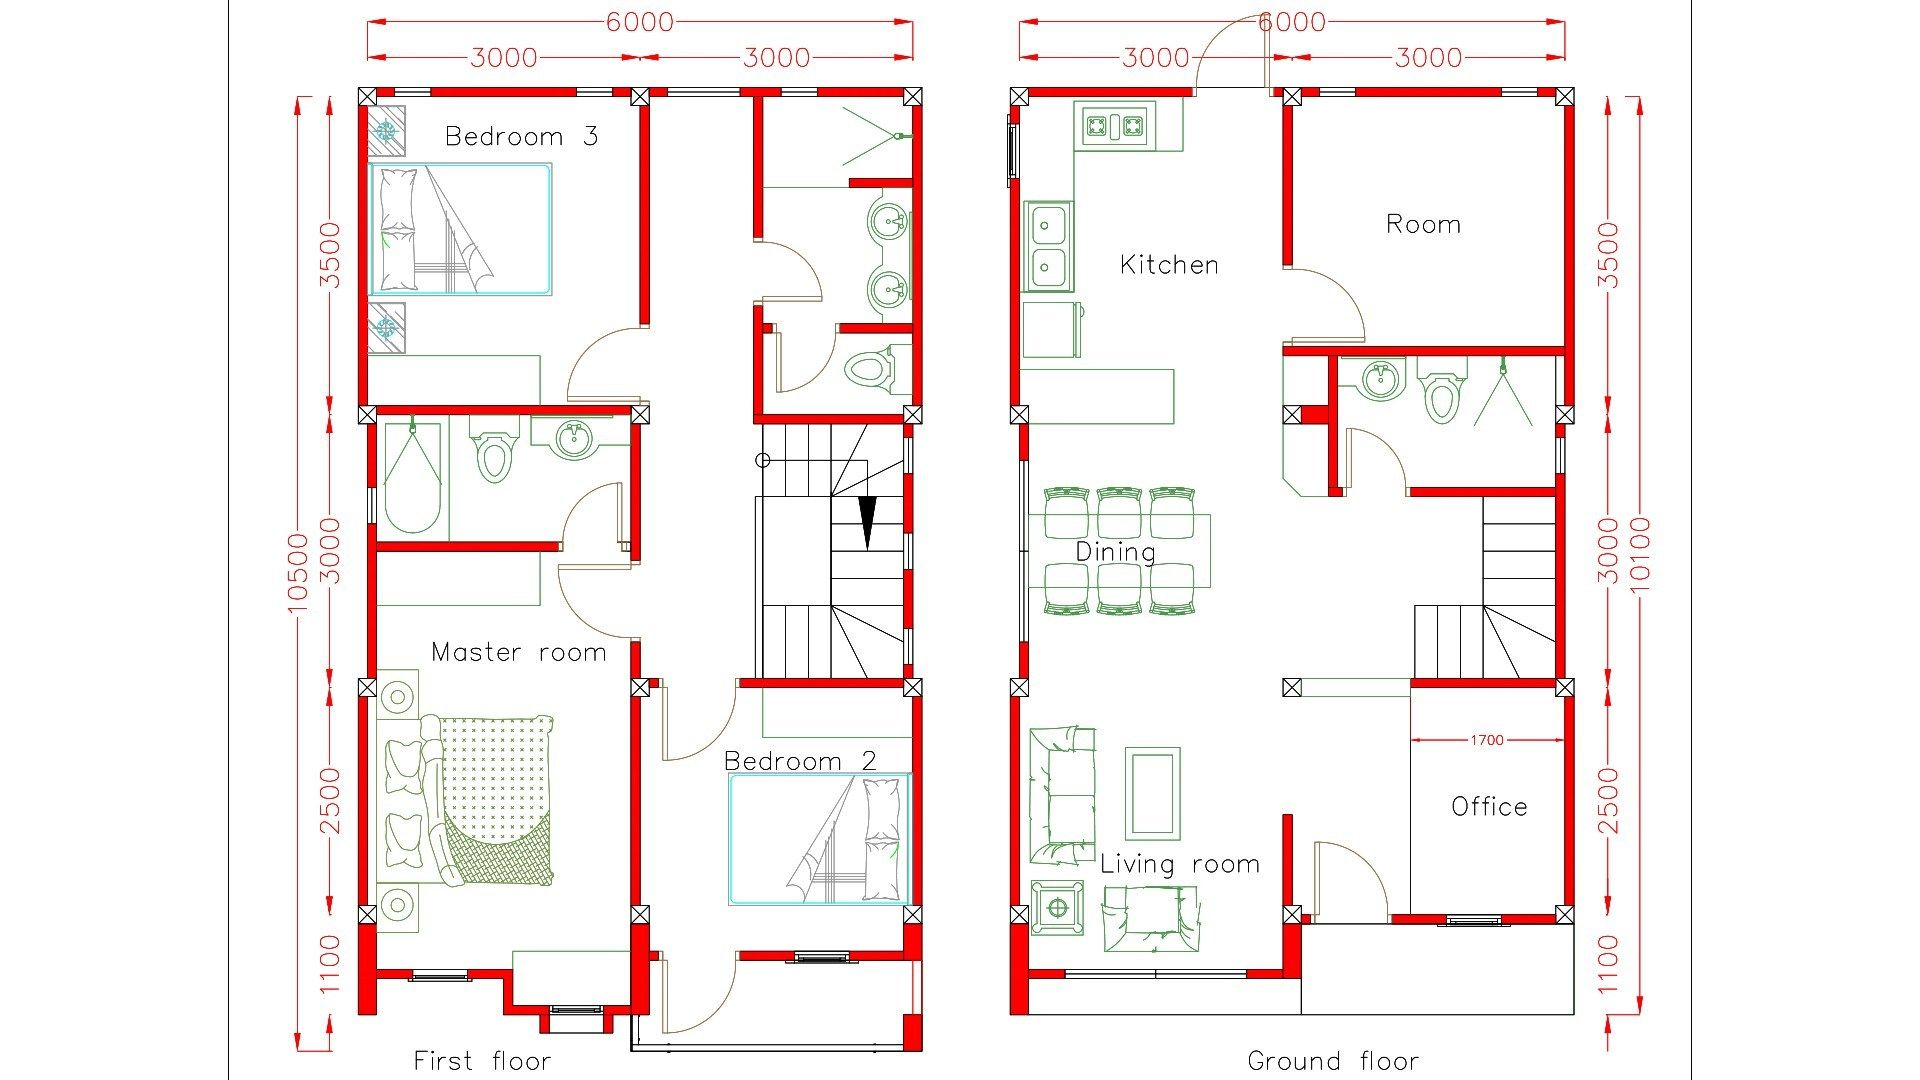 Home Design Plan 6x10m Home Design Plan Small House Design Plans 20x30 House Plans